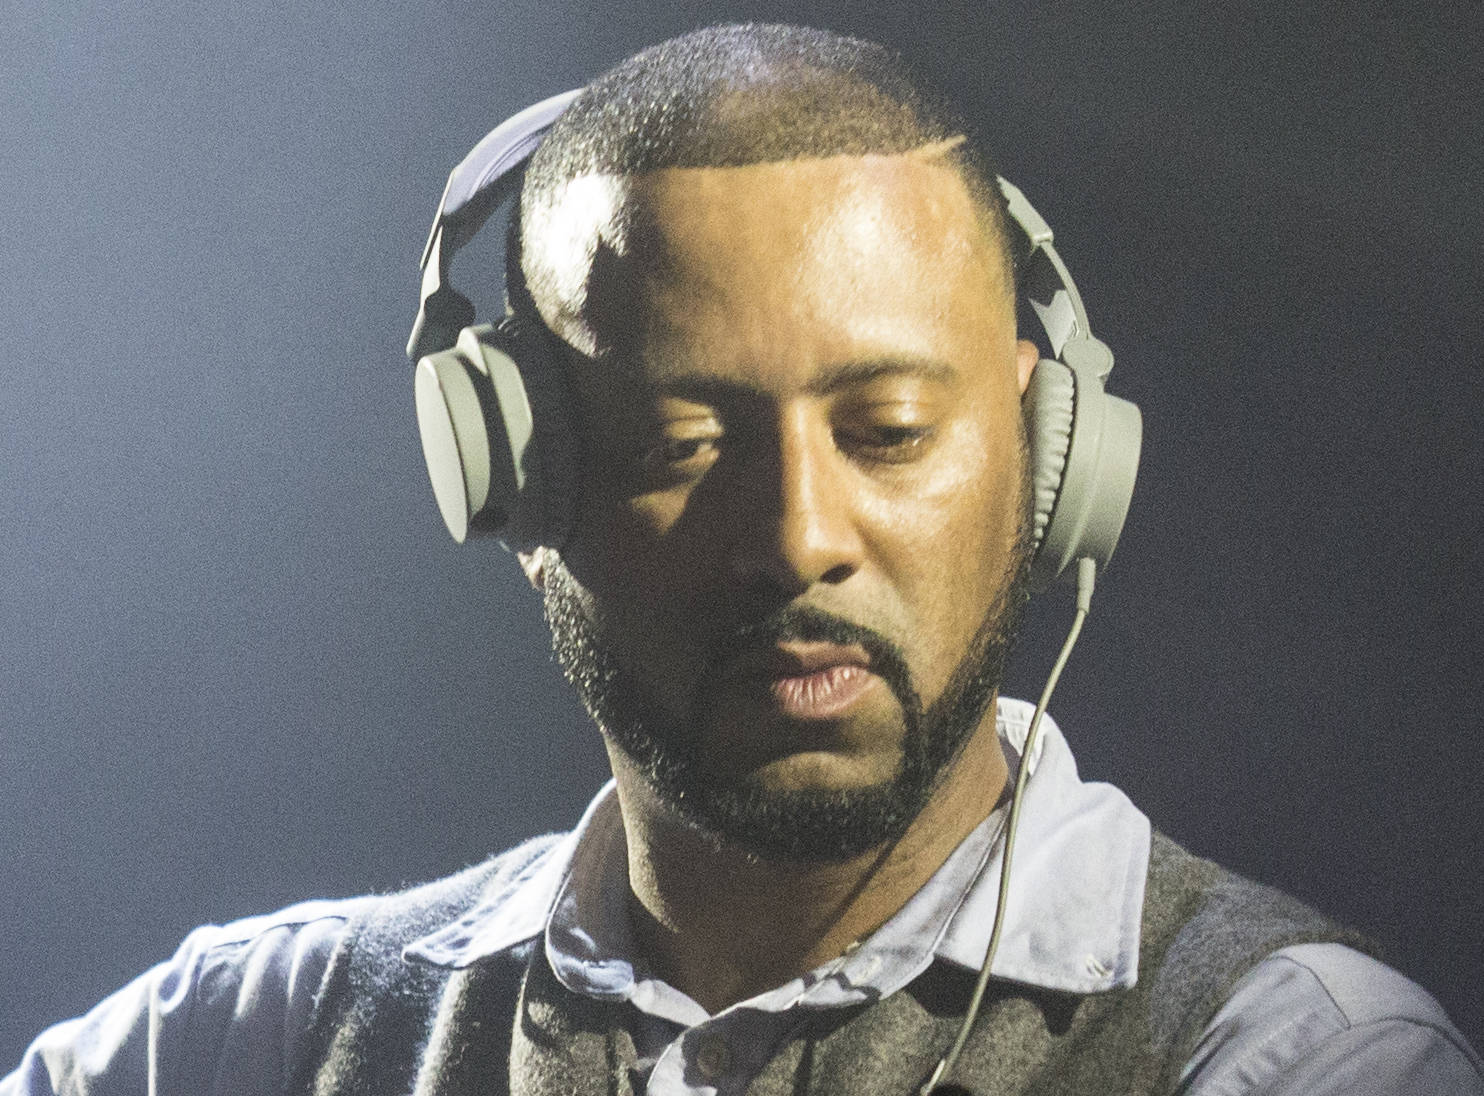 Madlib has a message from your Sound Ancestors